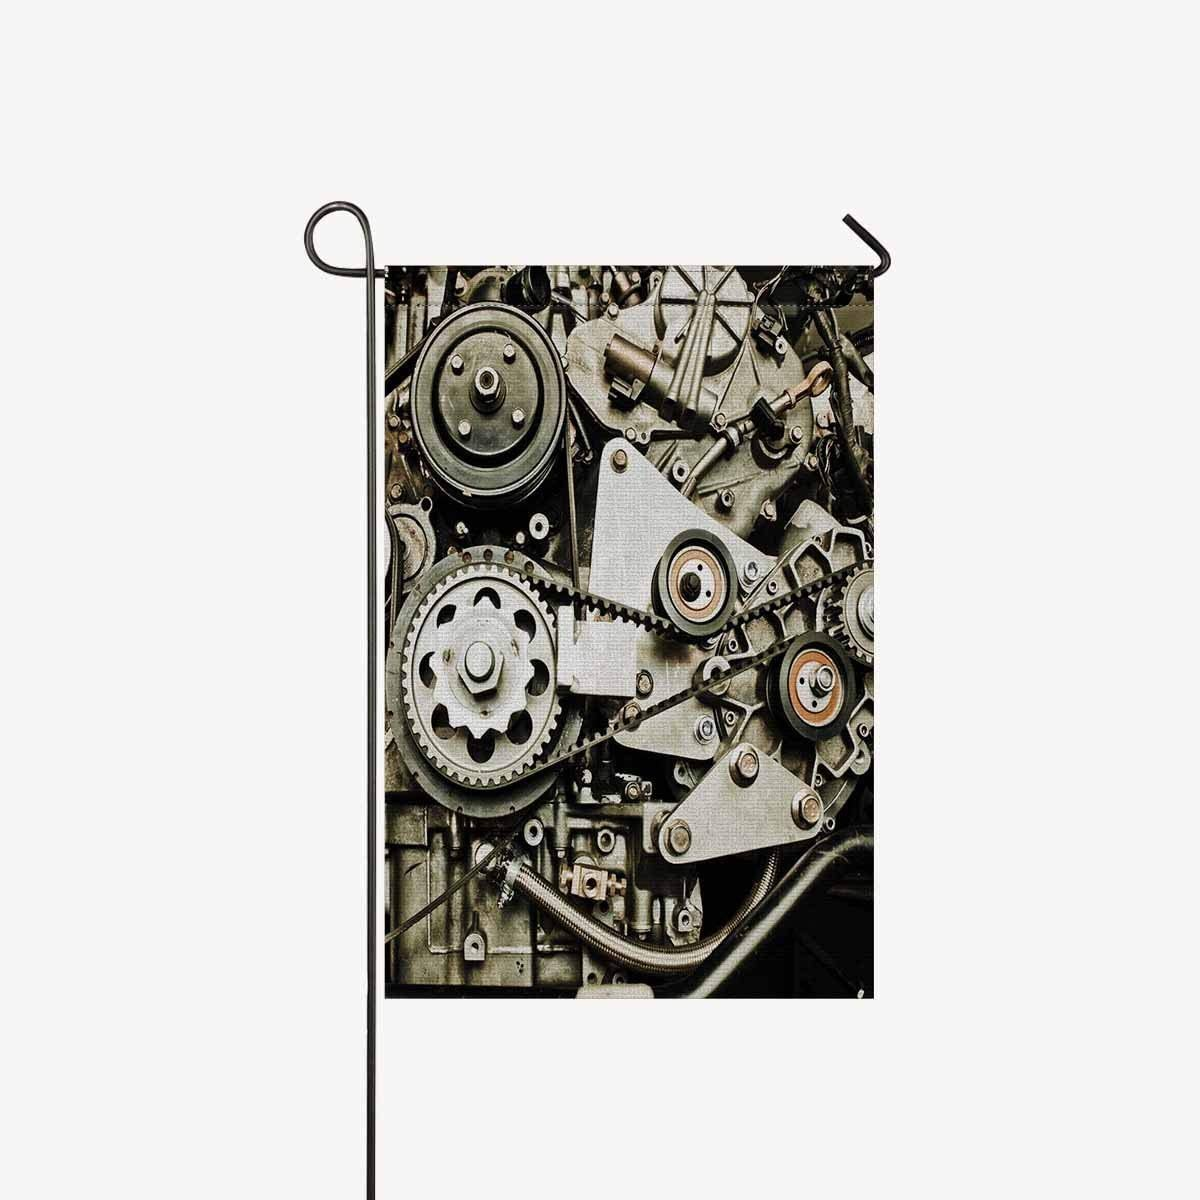 """Cool Sport Car's Engine Gears Steampunk Garden Flags House Banner Decorative Flags Home Outdoor Valentine,Welcome Holiday Yard Flags 12"""" x 18"""" (Without Flagpole)"""